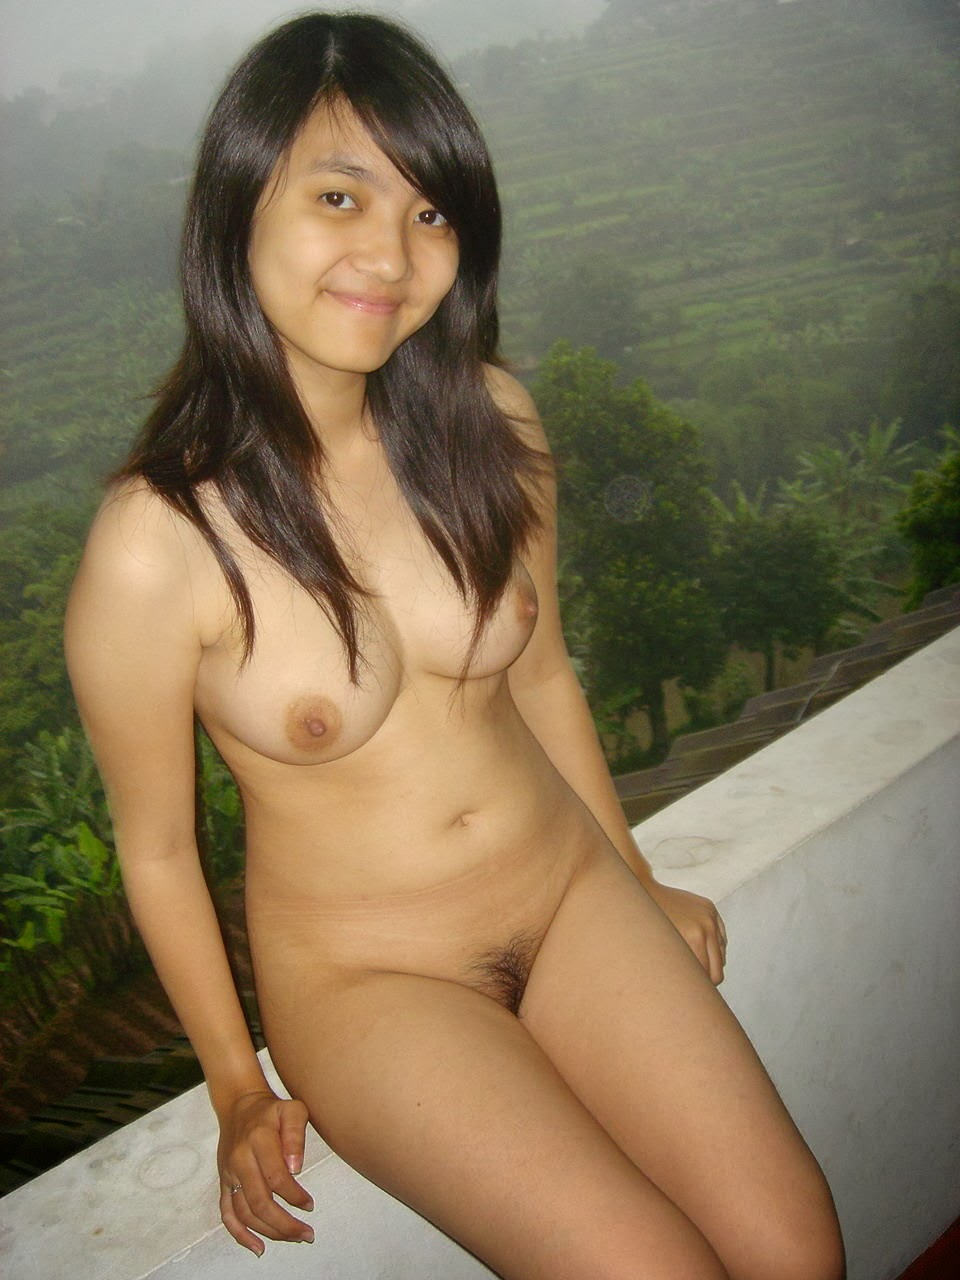 nepali girls naked pica